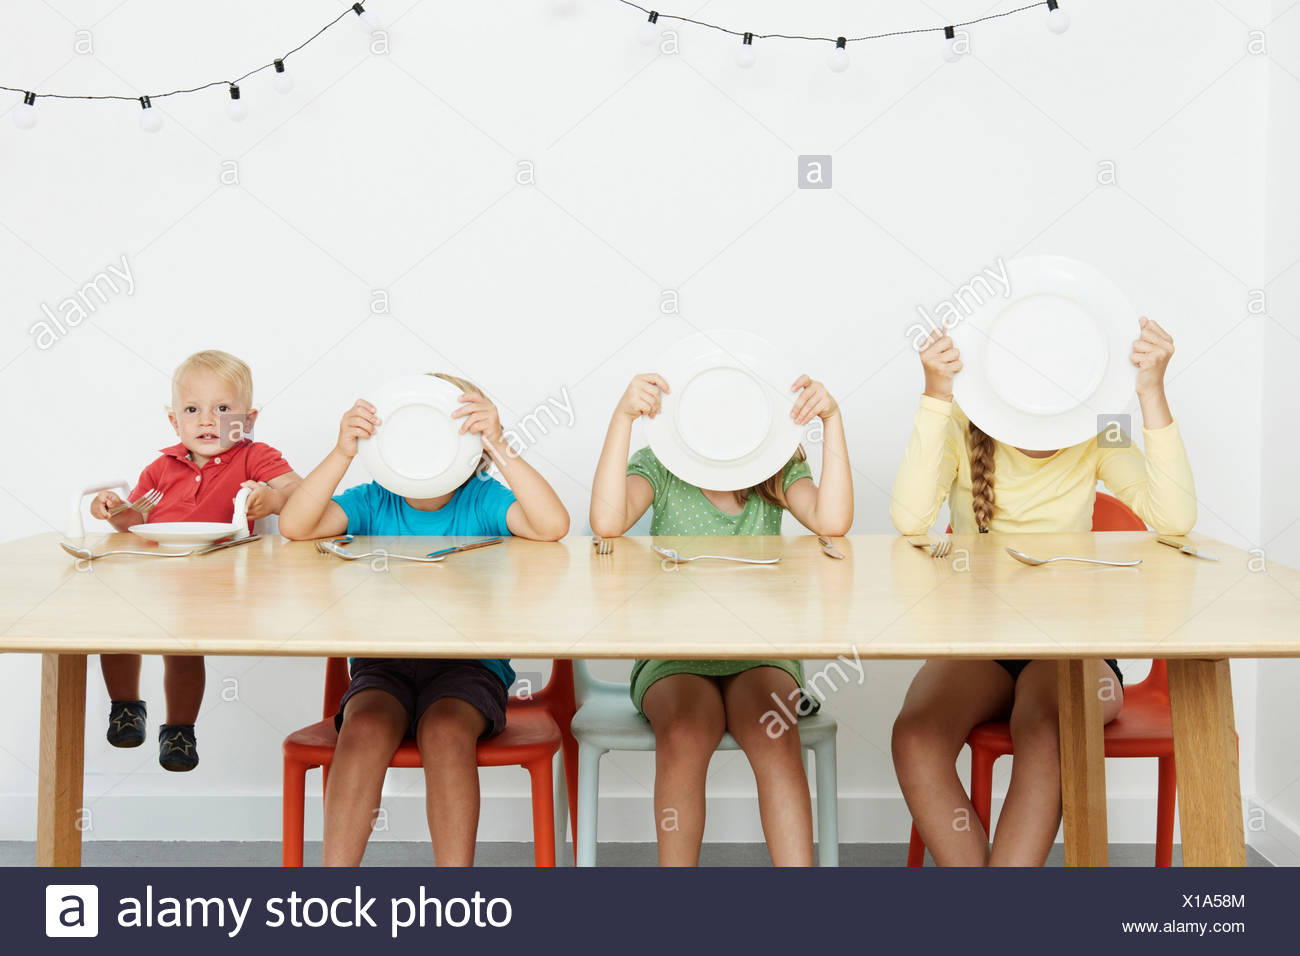 Four children sitting at table, three covering faces with plates - Stock Image